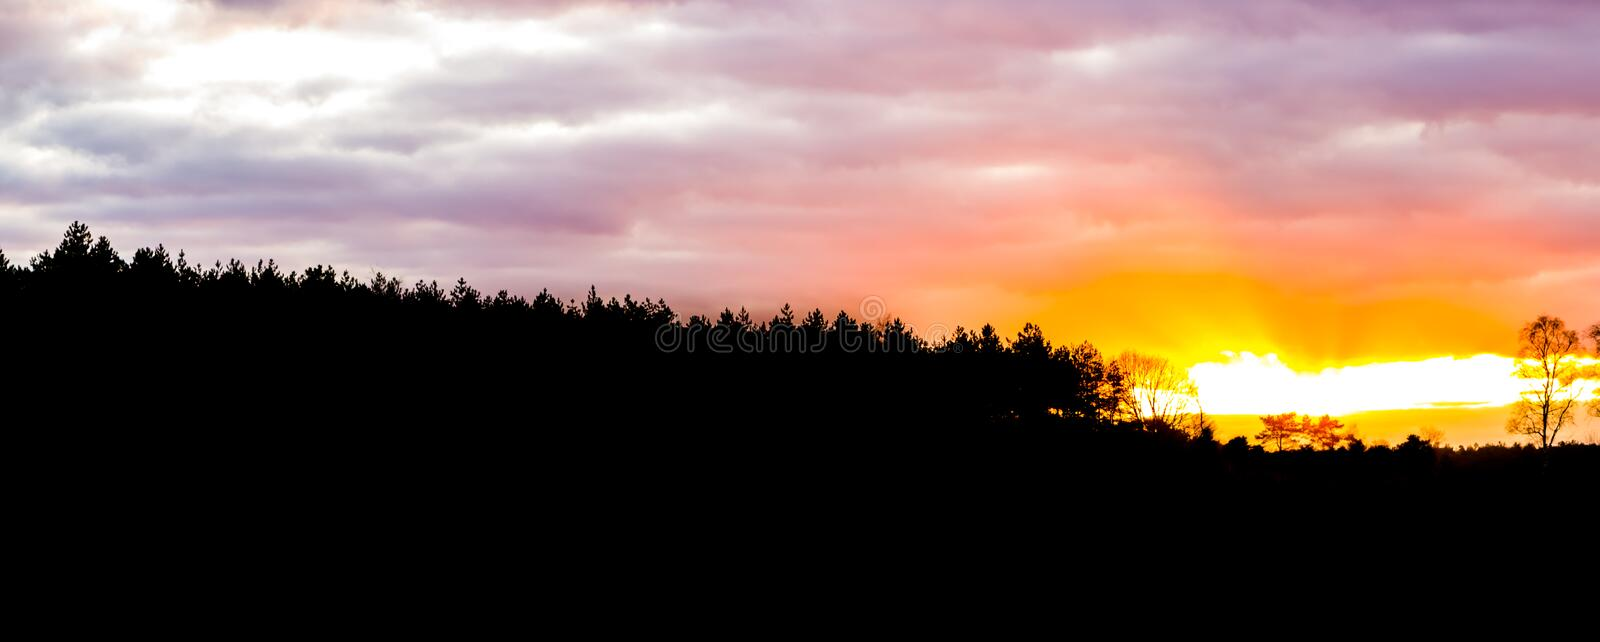 Silhouette of a heather landscape in the forest at sunset, sundown giving a colorful glow in the sky and clouds royalty free stock photos